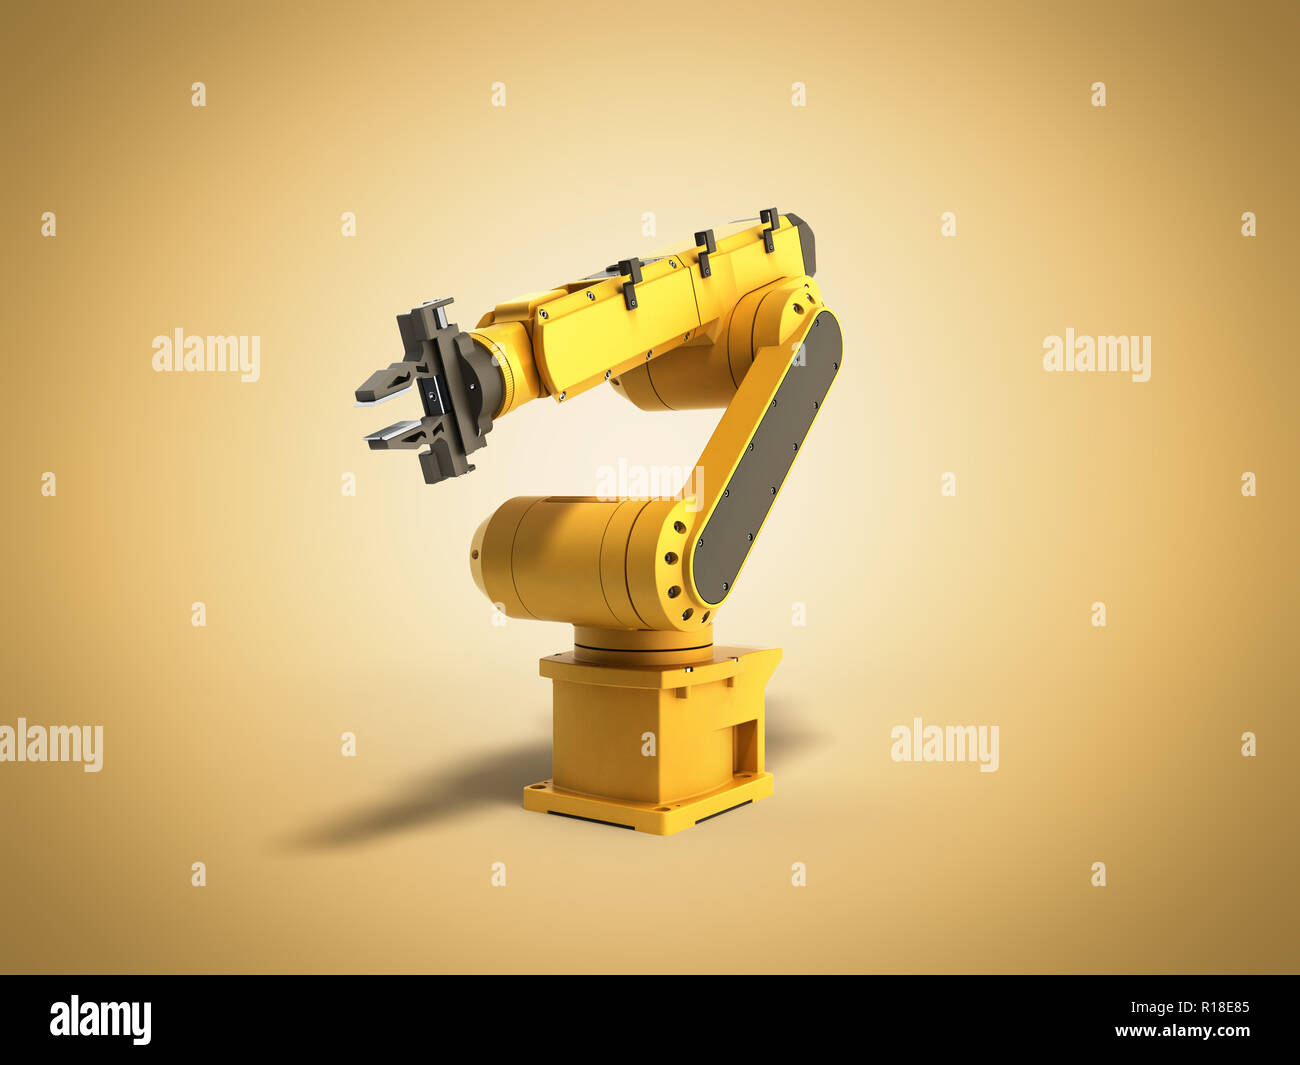 Industrial robot on yellow background 3D rendering - Stock Image